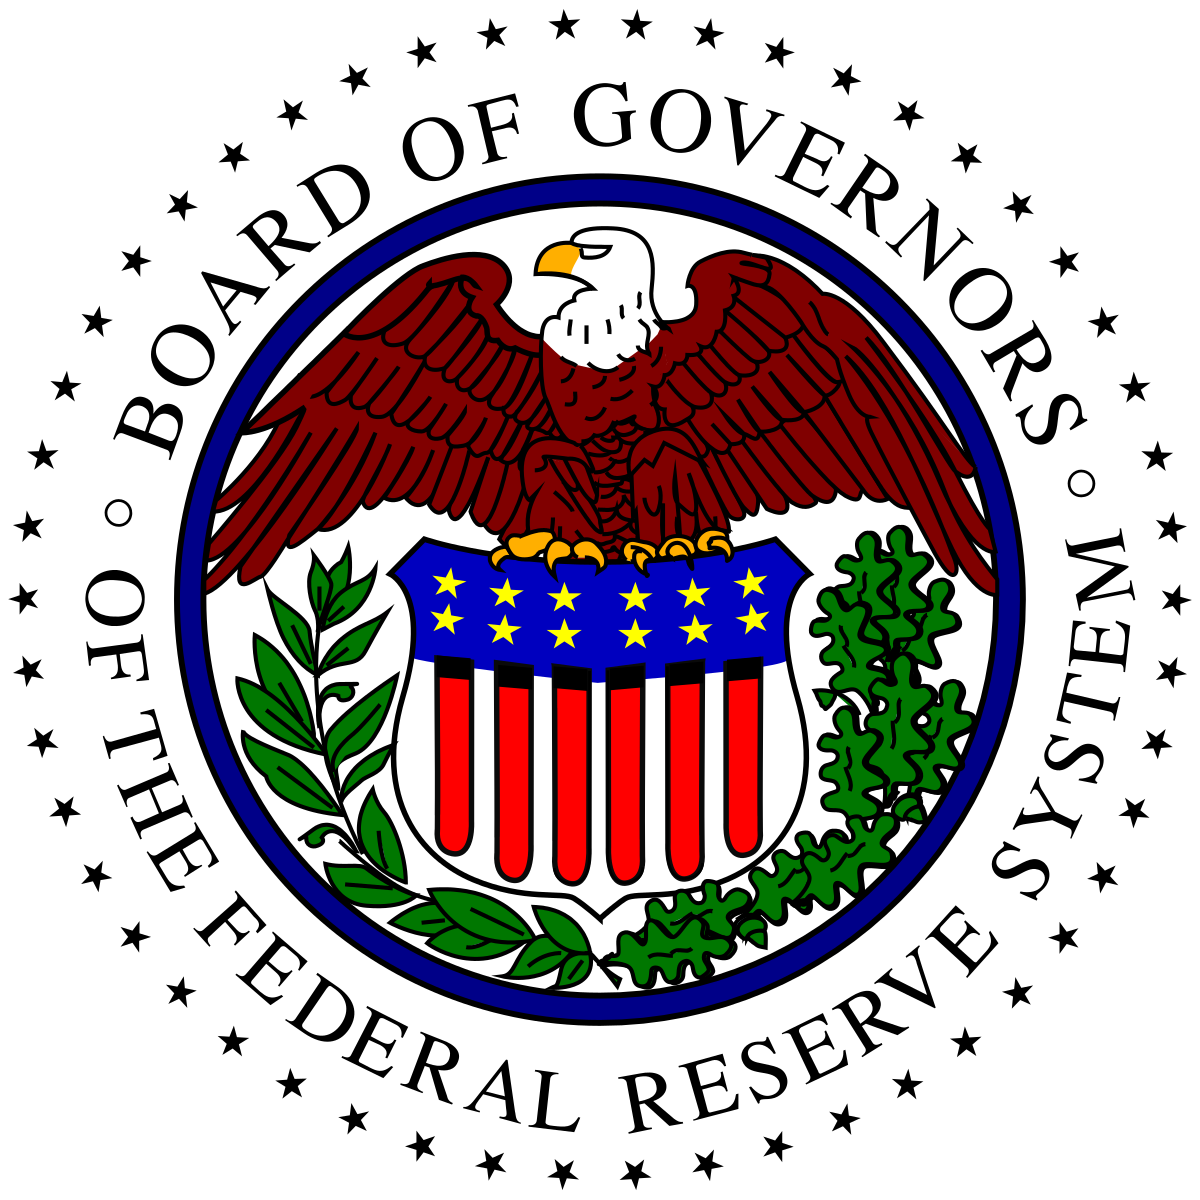 Board of Governors of the Federal Reserve System